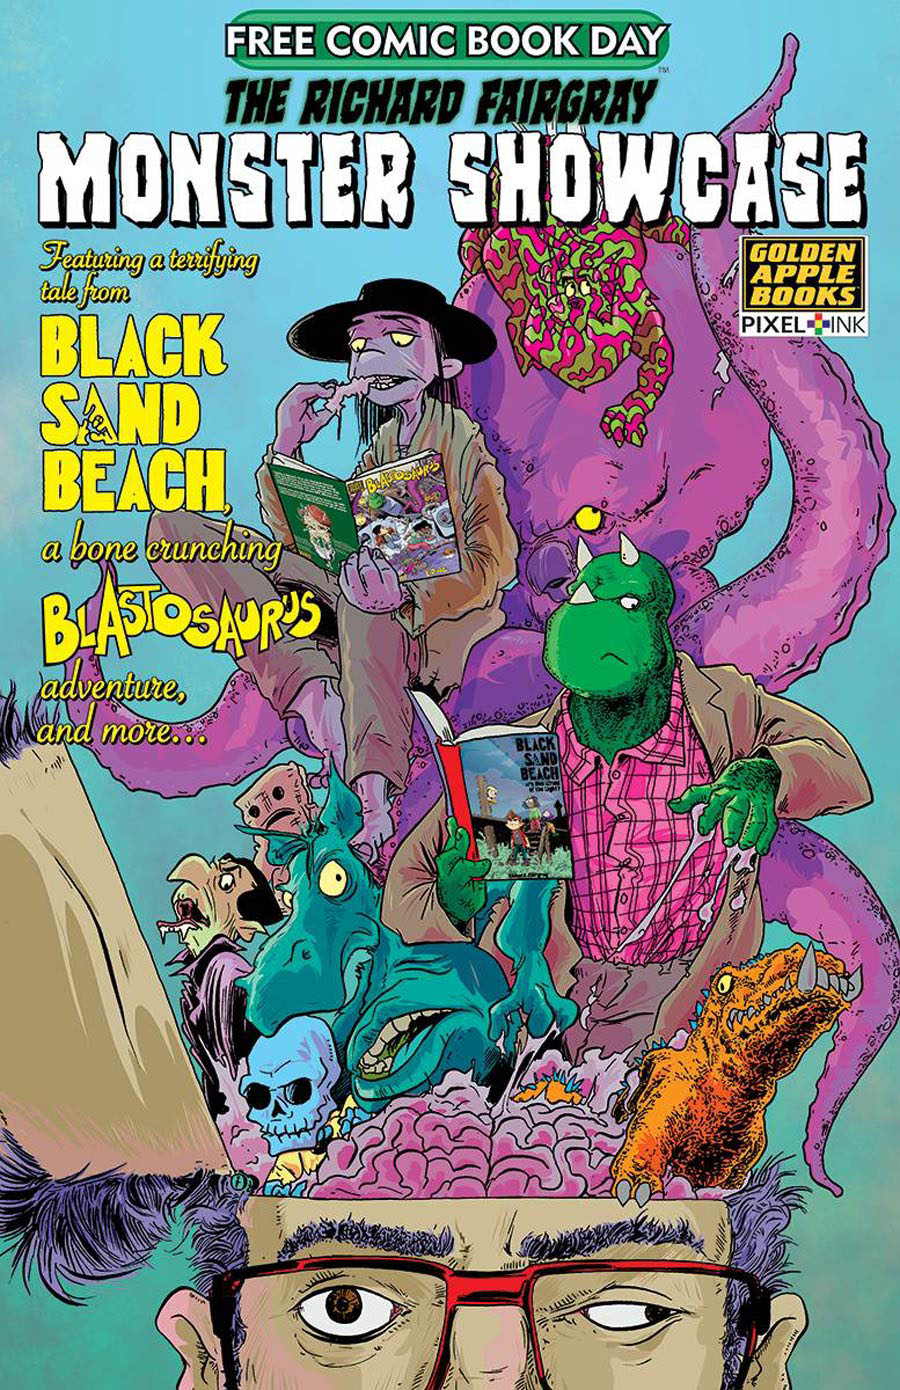 Richard Fairgray Monster Showcase FCBD 2020